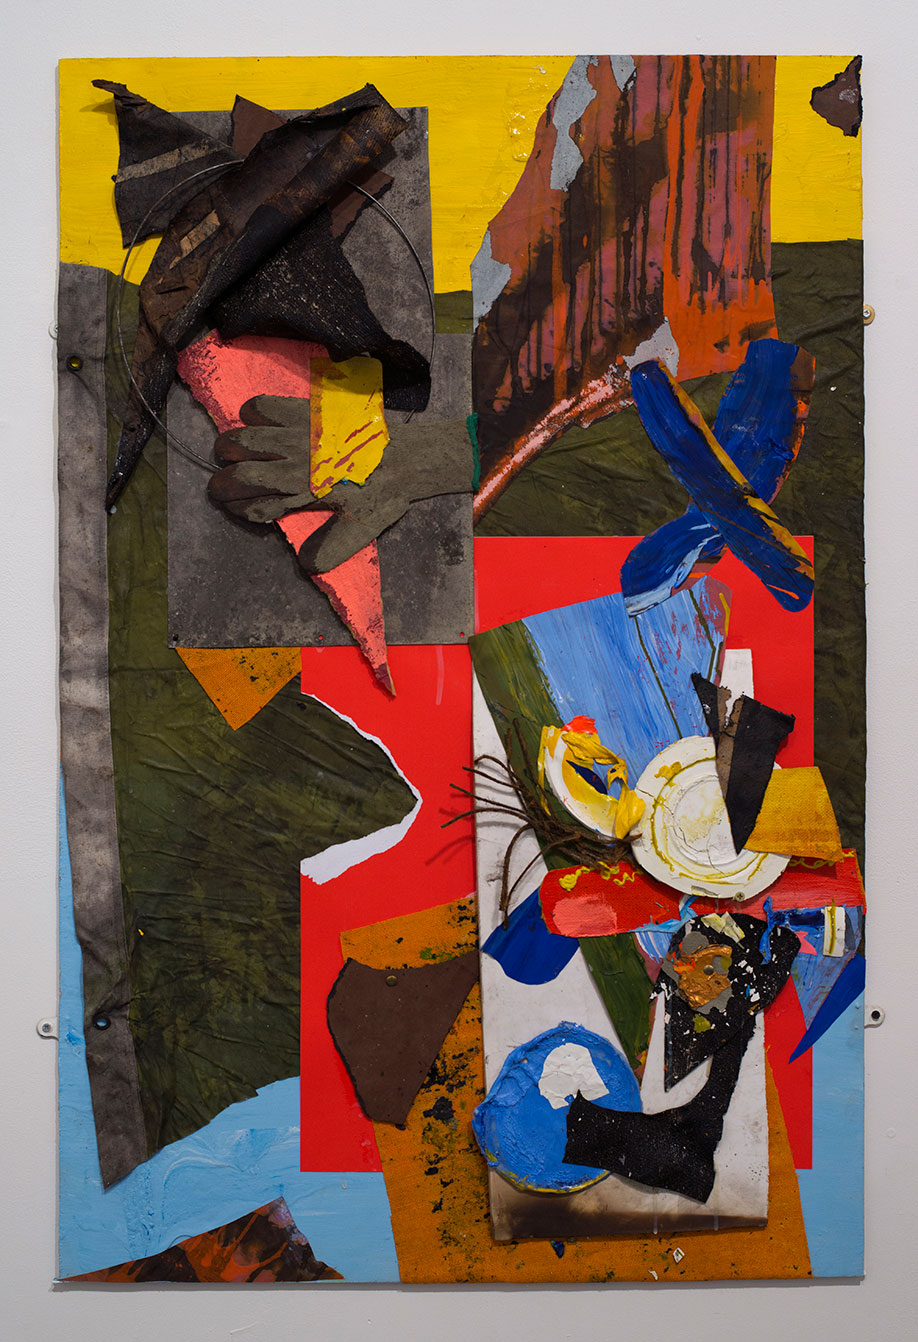 <b>Title:&nbsp;</b>7 Tons of Twilight<br /><b>Year:&nbsp;</b>2014<br /><b>Medium:&nbsp;</b>Mixed media collage<br /><b>Size:&nbsp;</b>150 x 100 cm